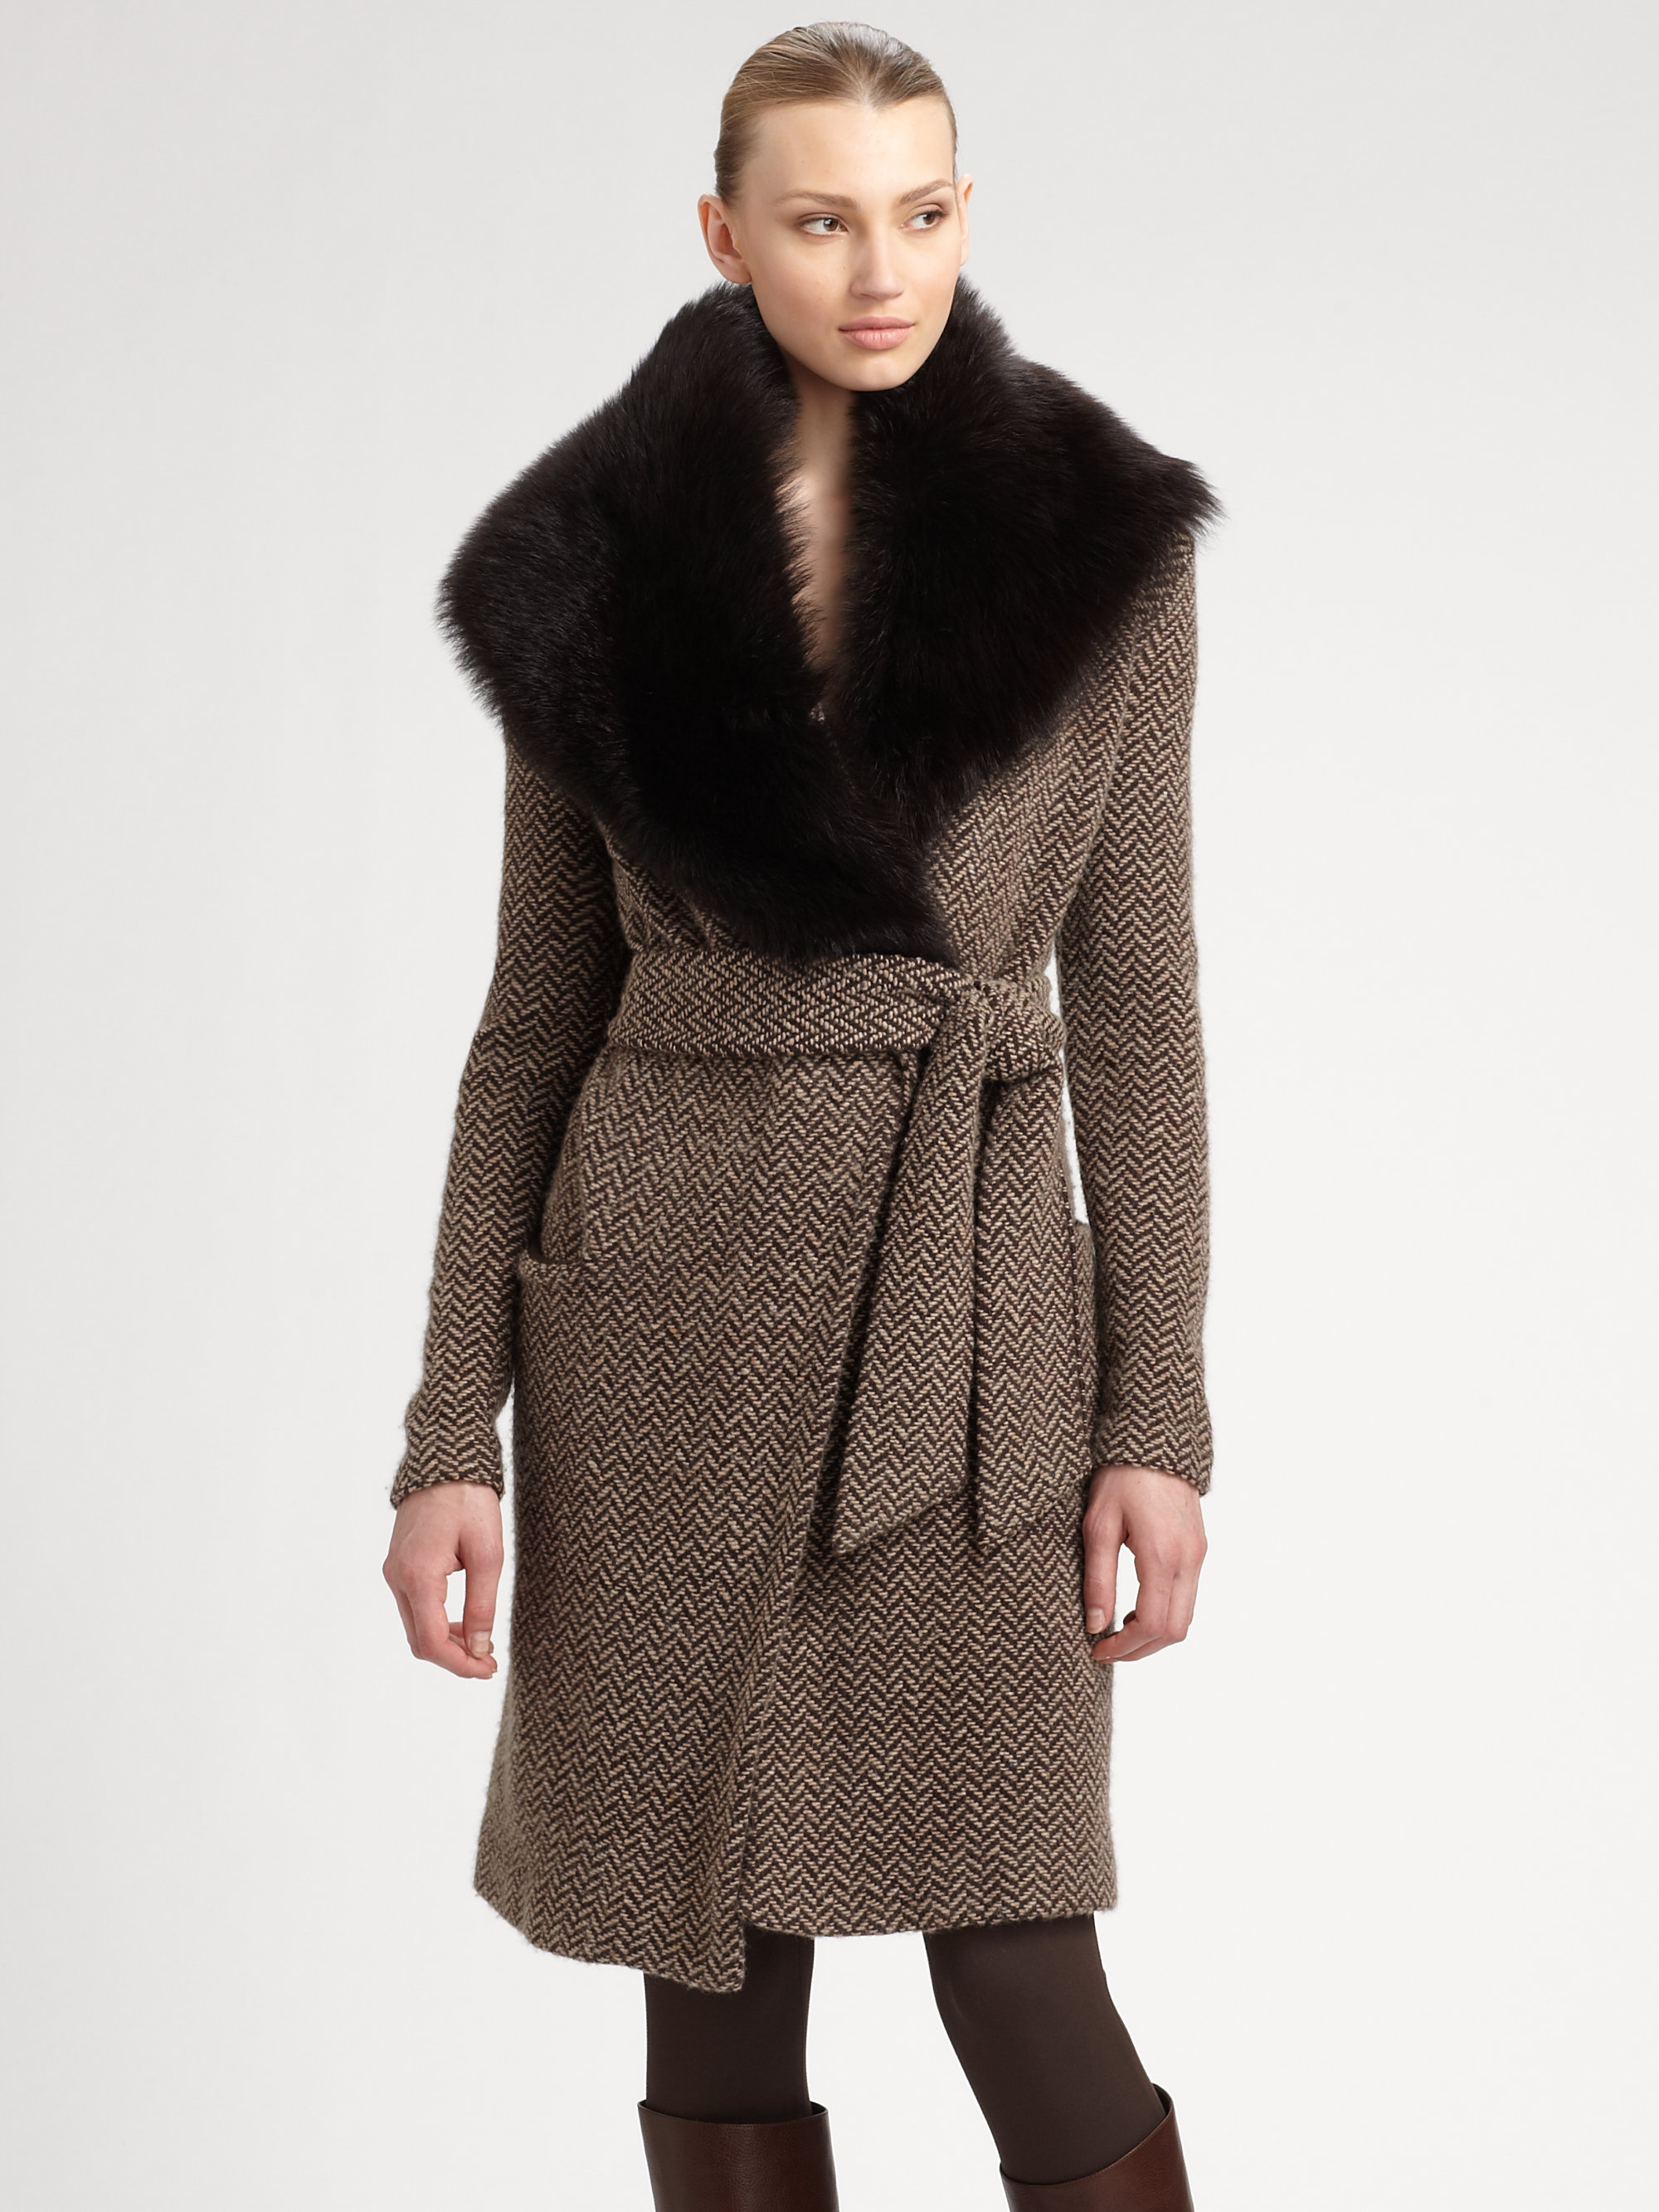 Ralph lauren black label Shearling-collar Wool Sweater Coat in ...